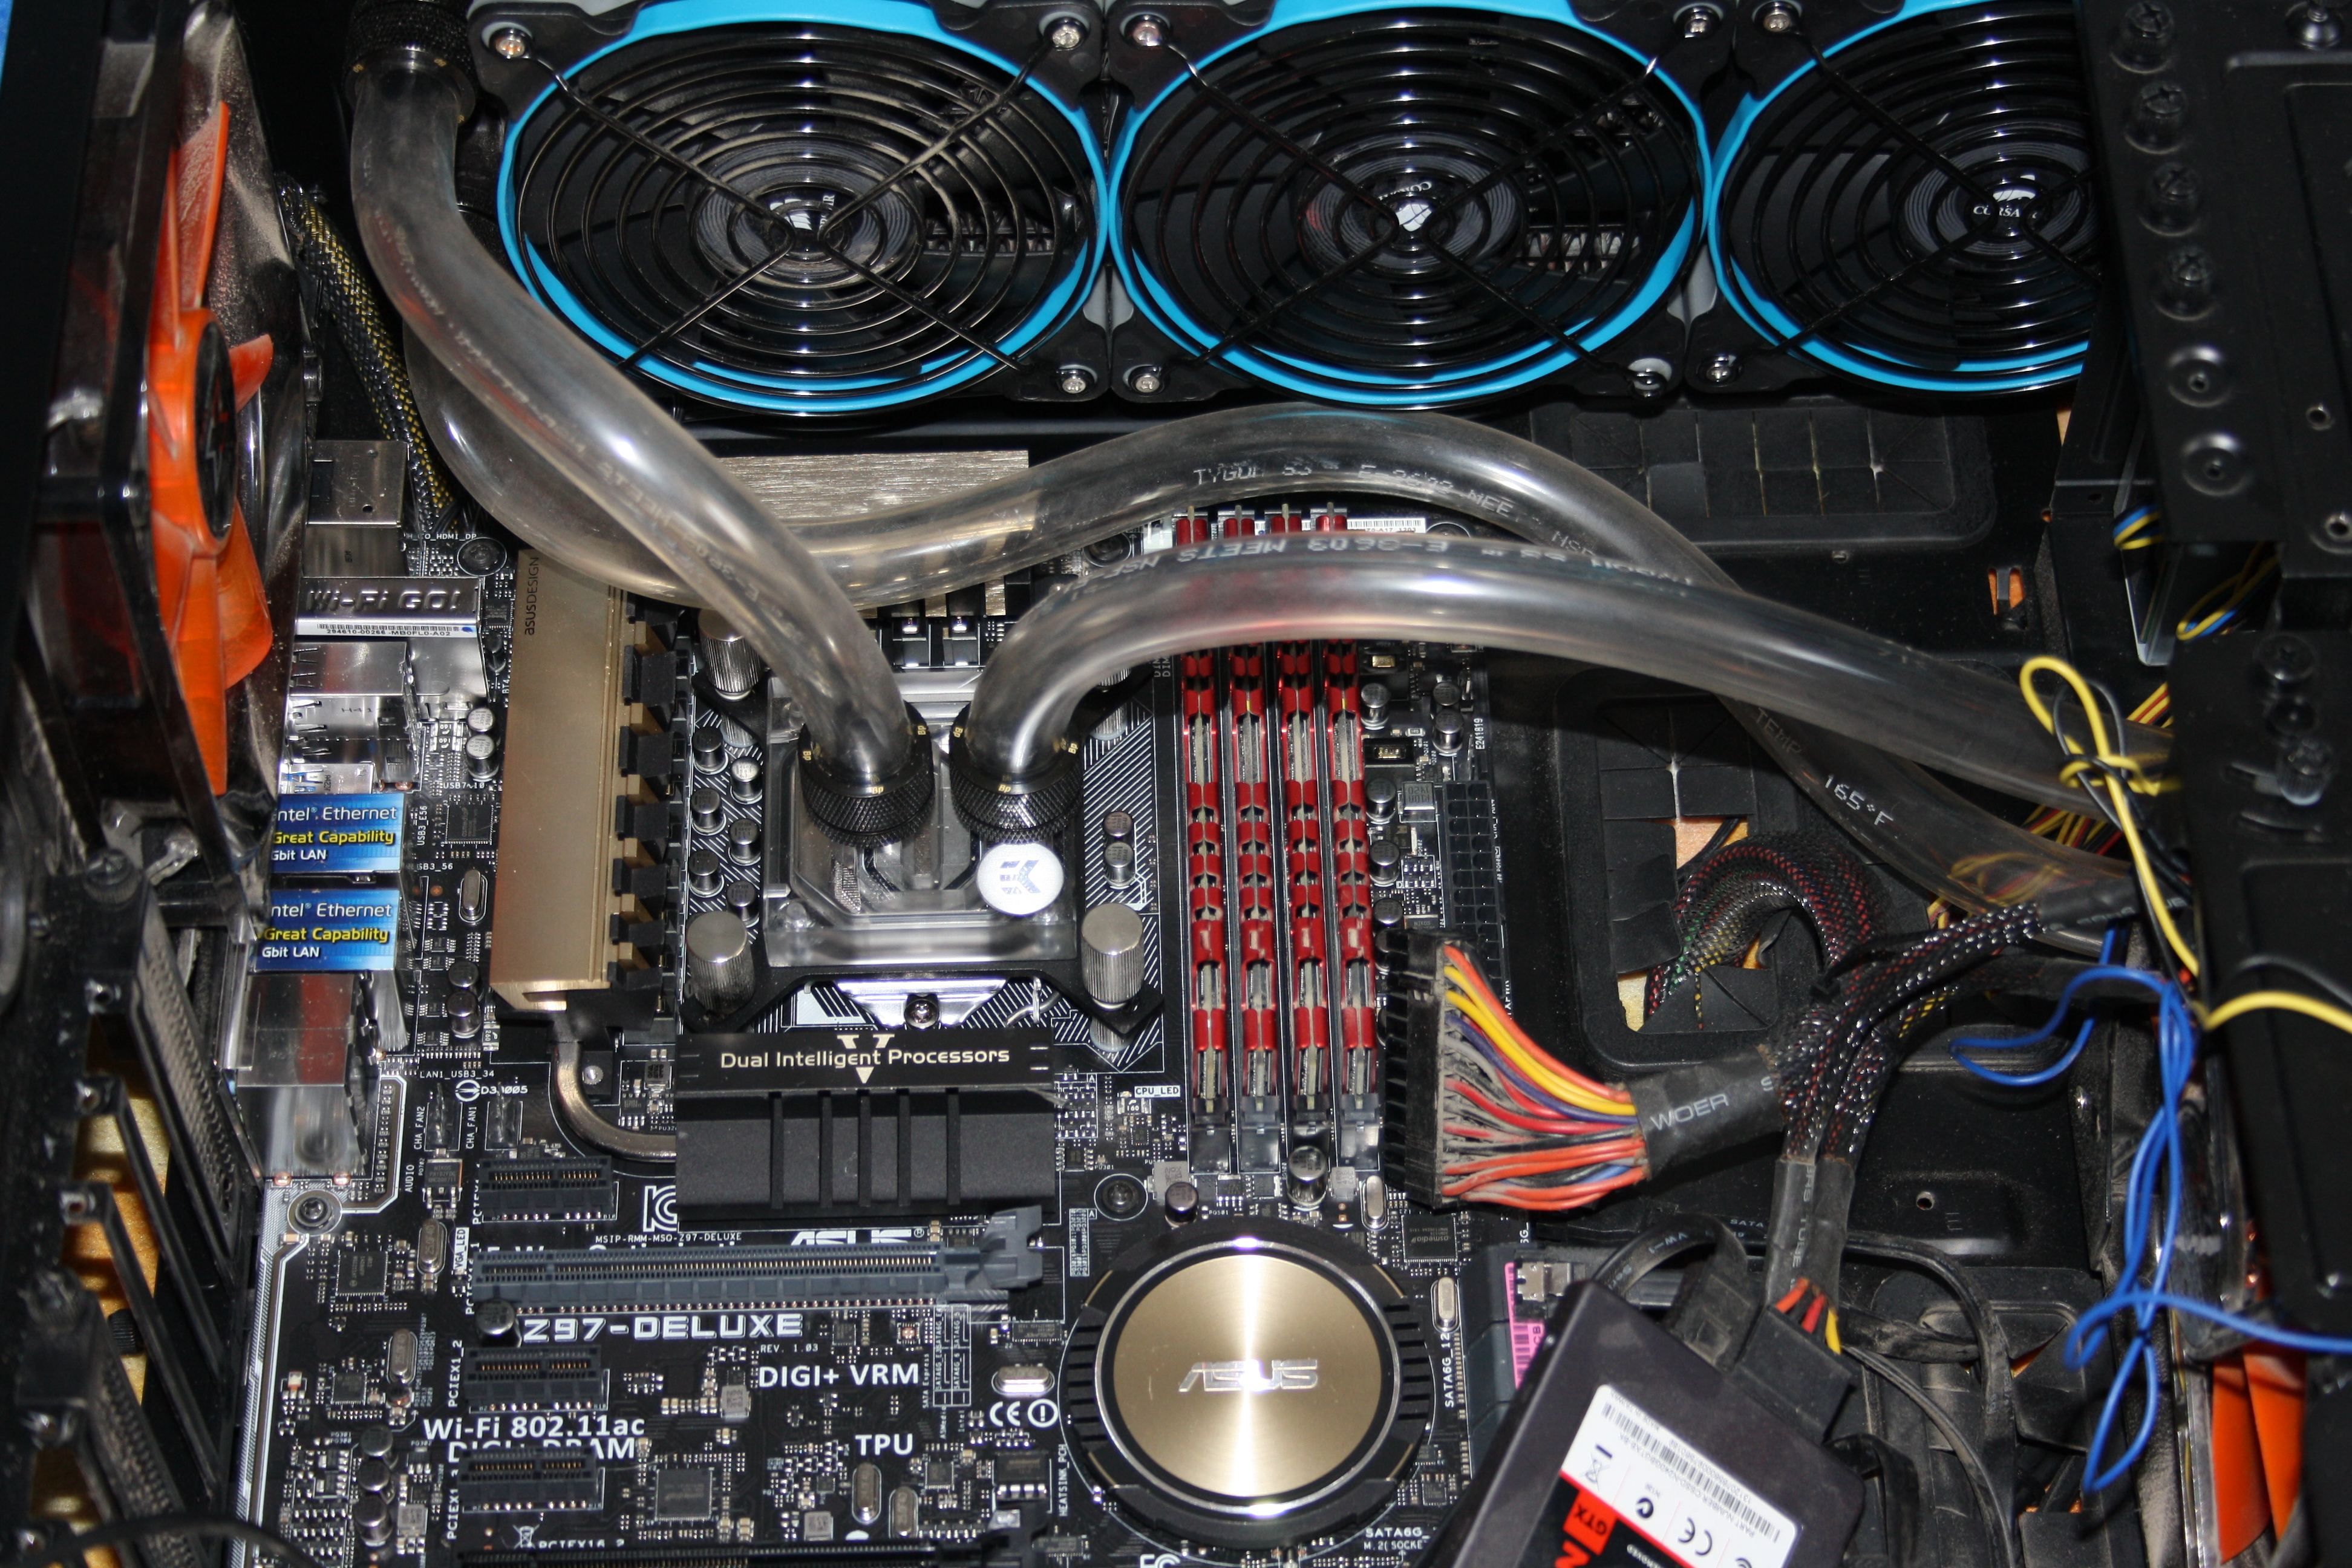 Moved from my good old Gigabyte Z68X-UD7-B3 to ASUS Z97-DELUXE MB